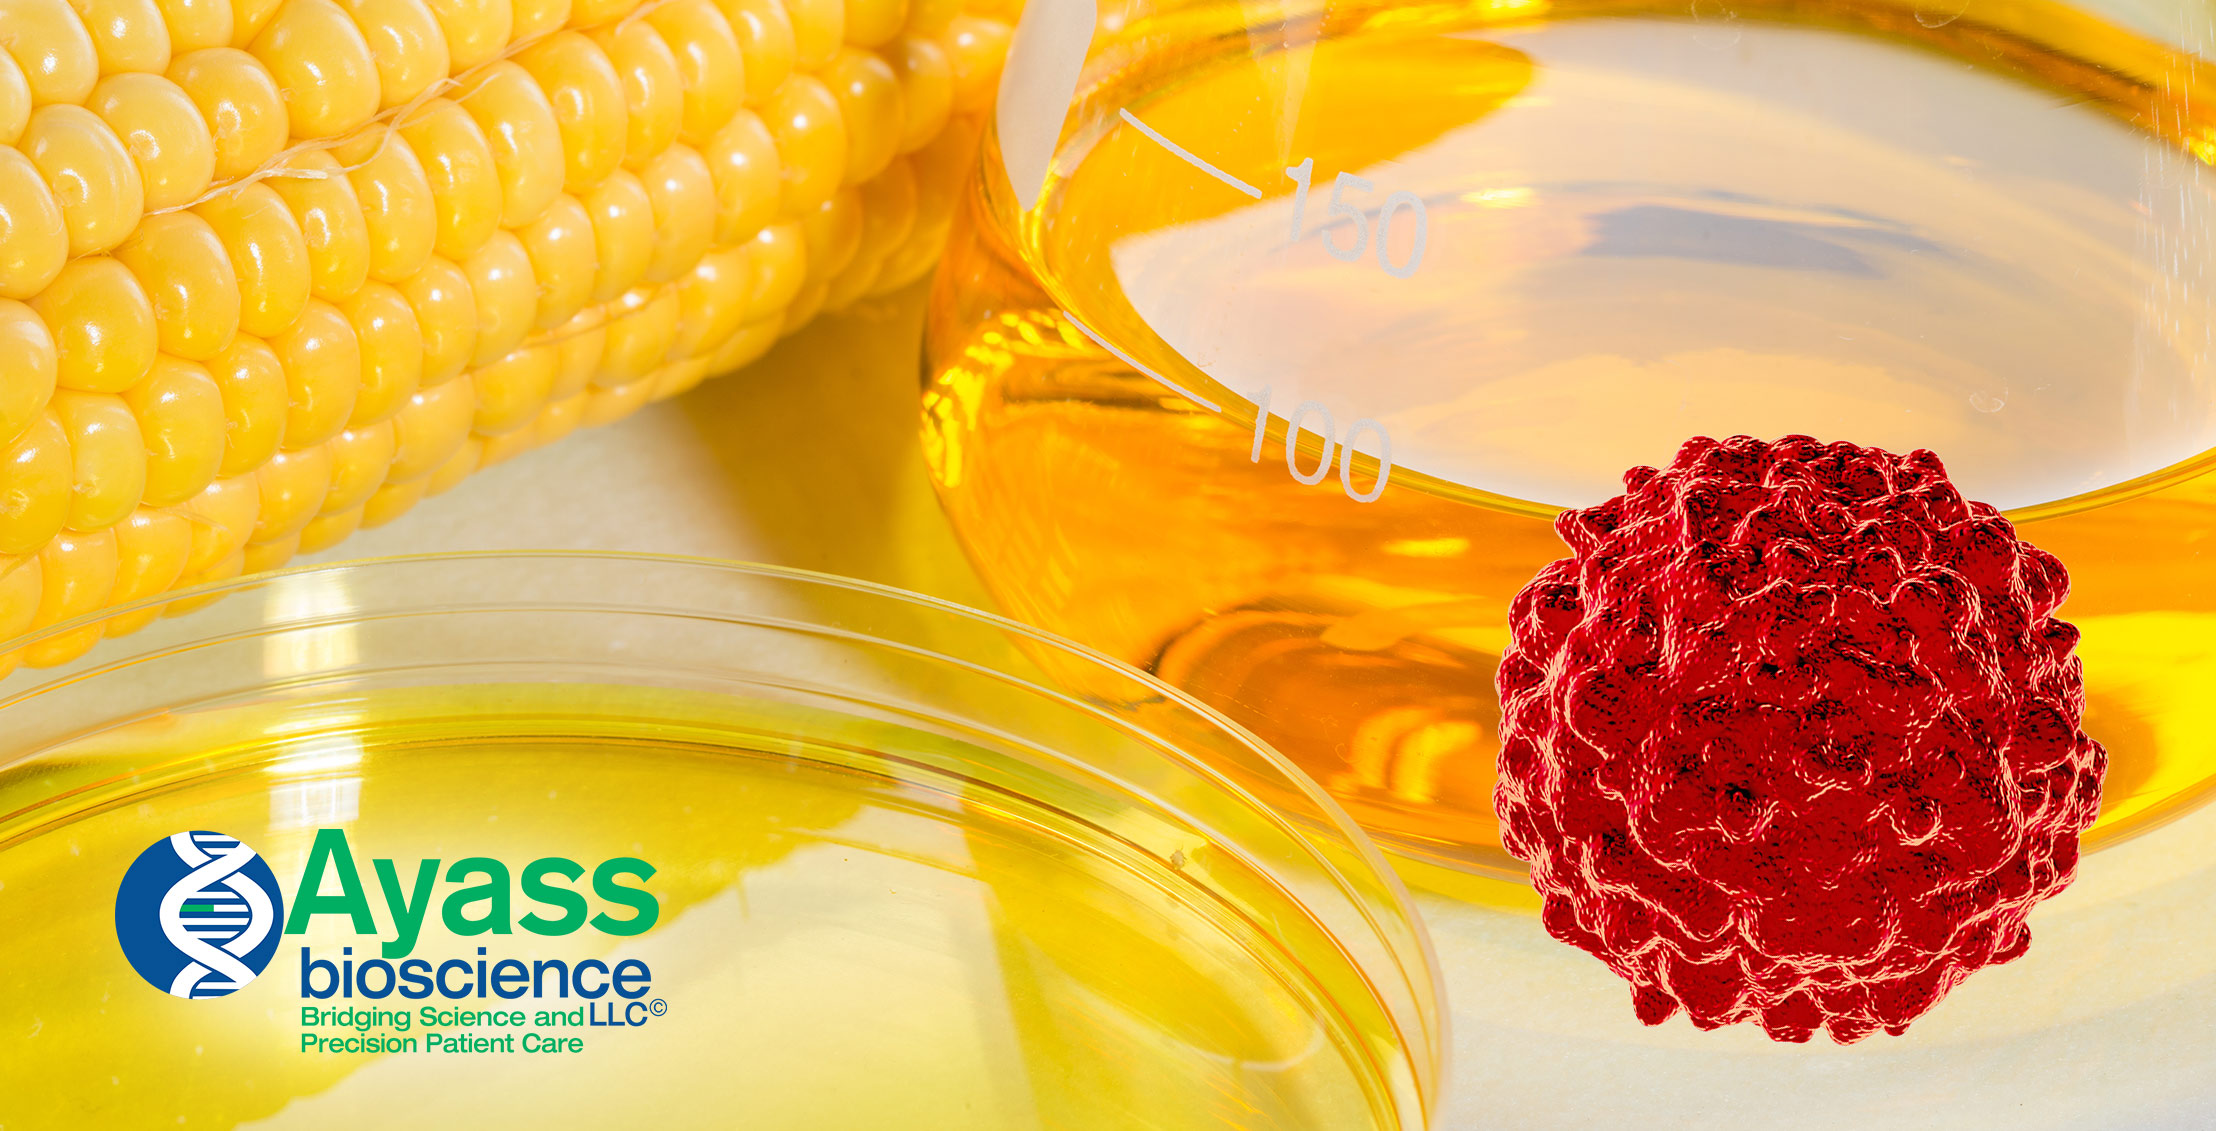 High Fructose Corn Syrup and Tumors